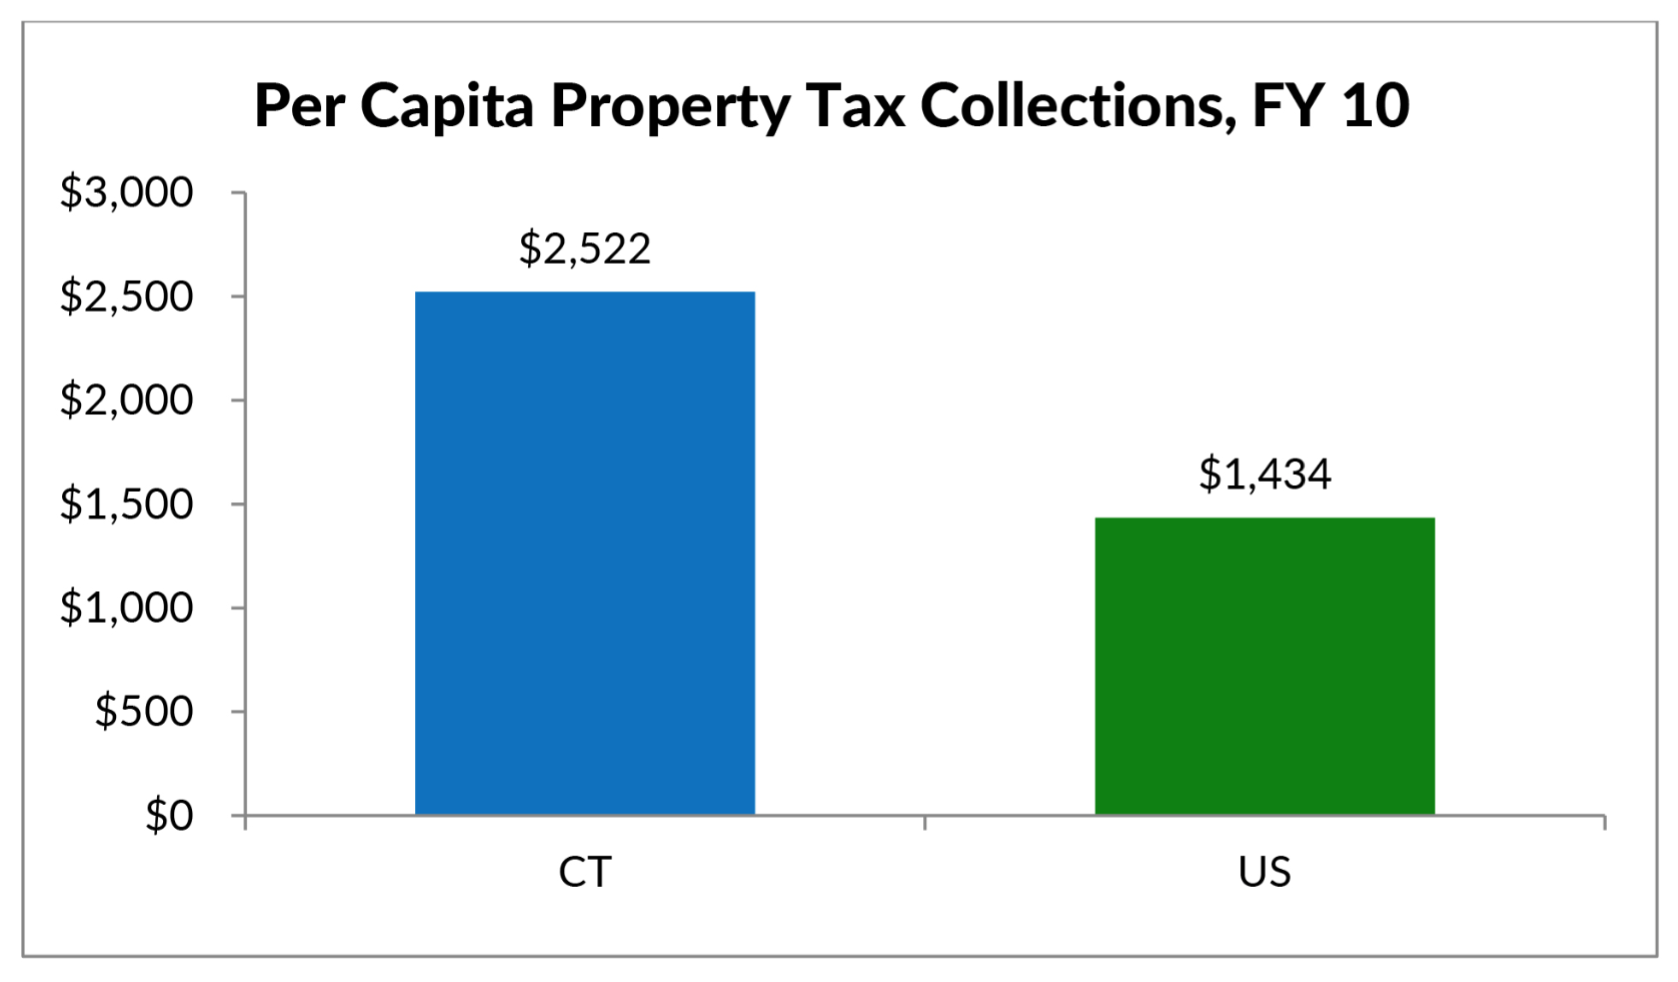 Municipalities say CT's property tax system is unsustainable